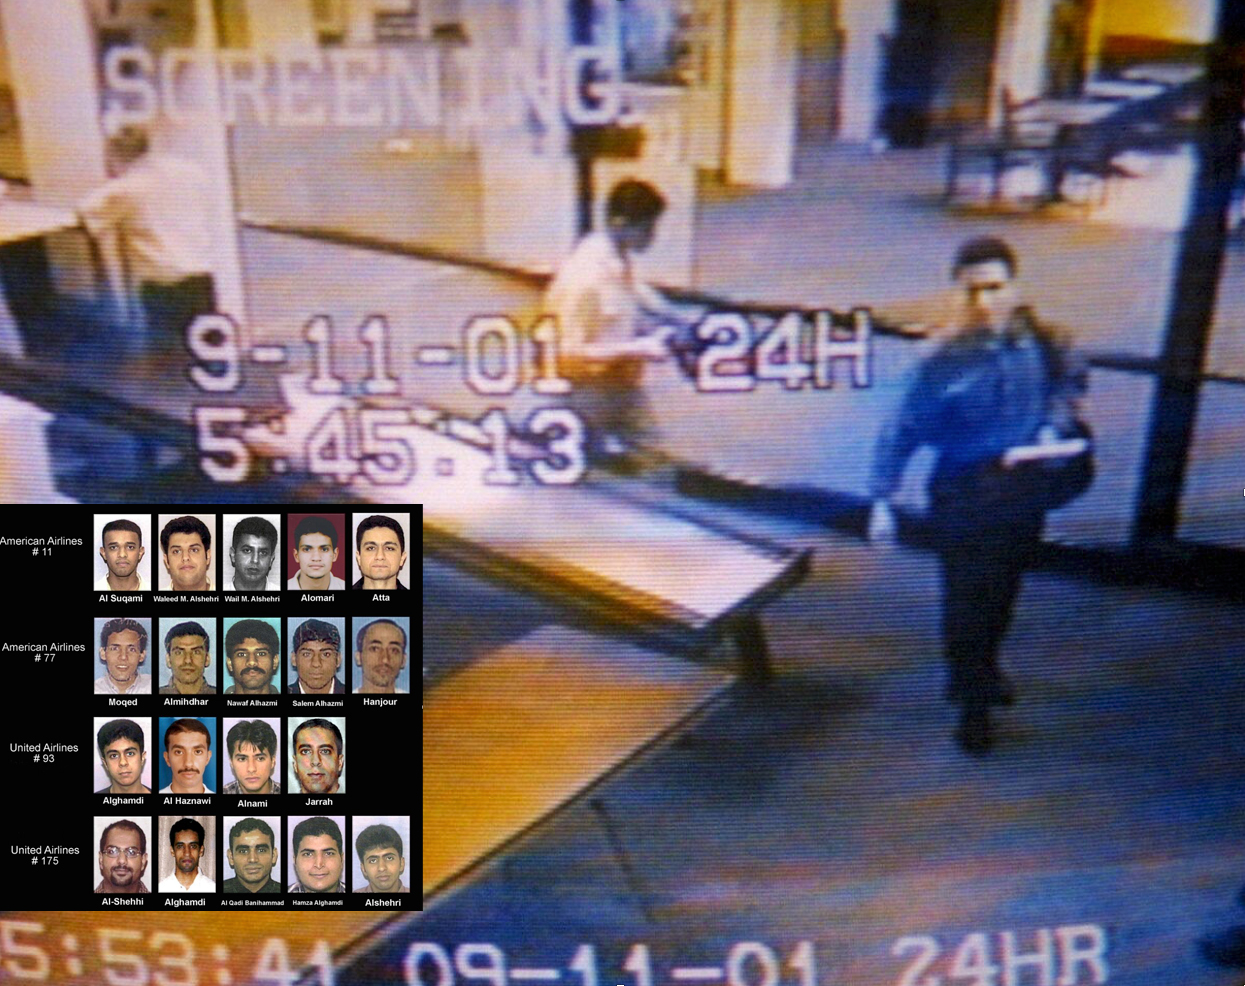 Hijackers Mohamed Atta, right, and Abdulaziz Alomari, center, pass through airport security in Portland, Maine, early on the morning of September 11, 2001, in this photo from the airport surveillance tape. (INSET: Images of the hijackers arranged by the flights they commandeered, released by the U.S. Justice Department.)